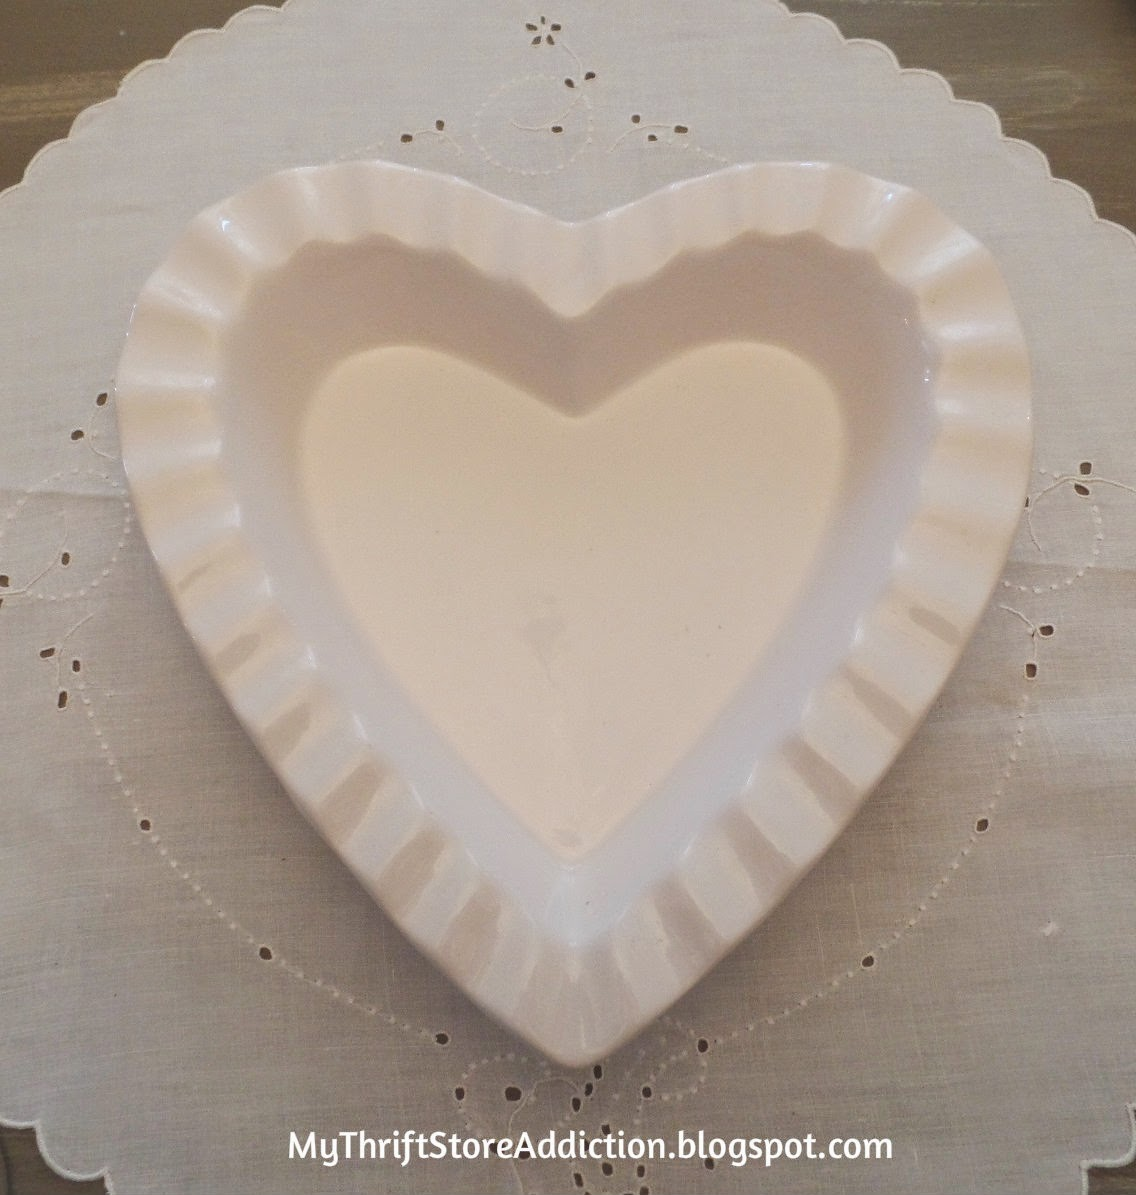 White heart baking dish